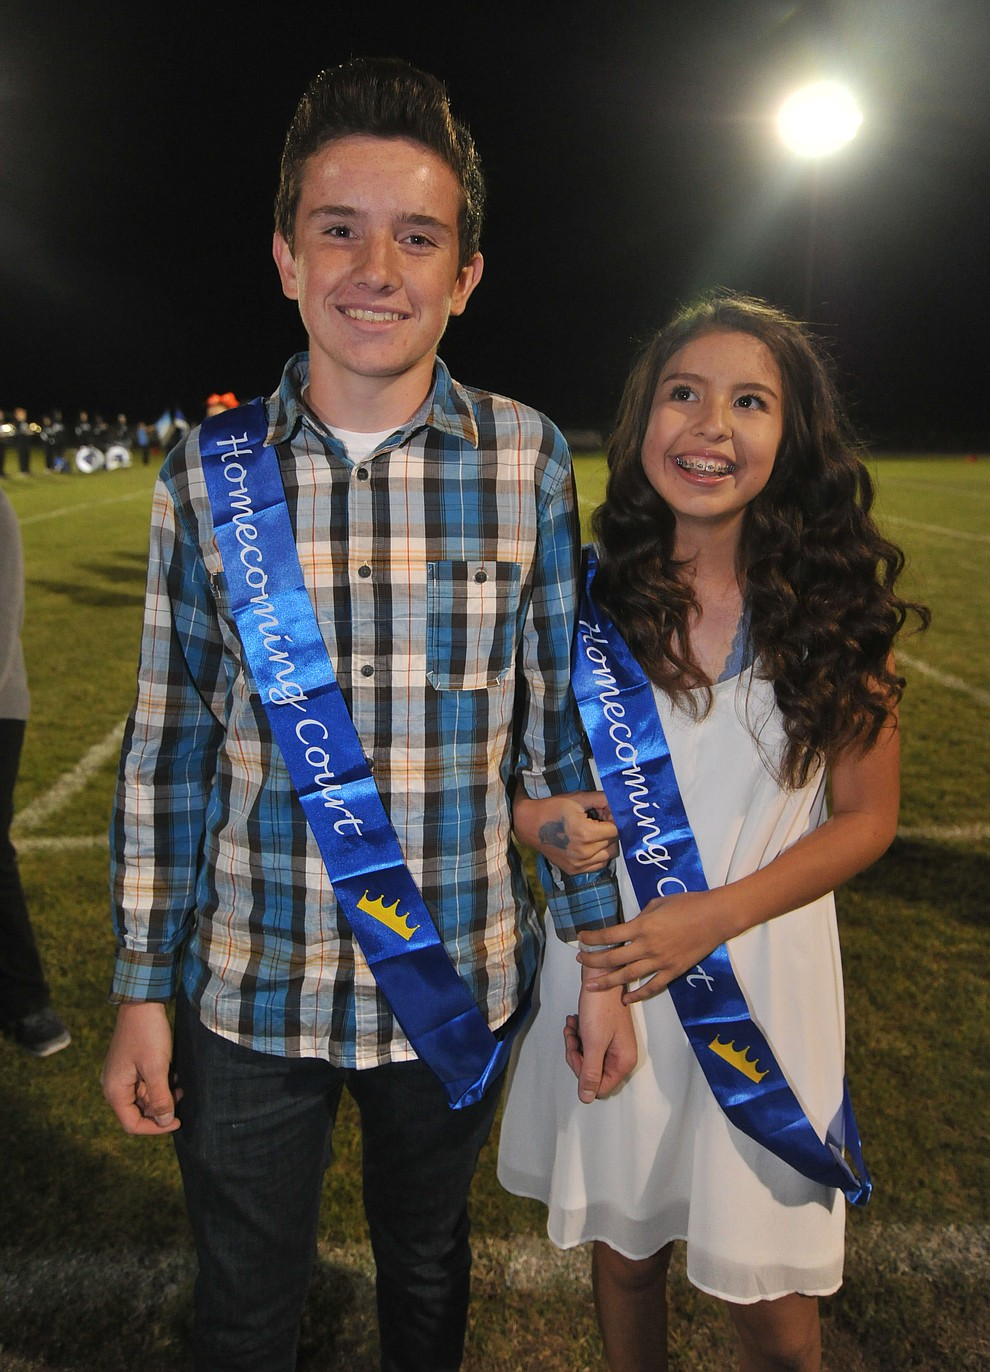 Chino Valley High School sophomore homecoming royalty Ethan Addy and Magali Gomez were crowned during halftime of the football game against Kingman Friday, October 6. (Les Stukenberg/Courier)